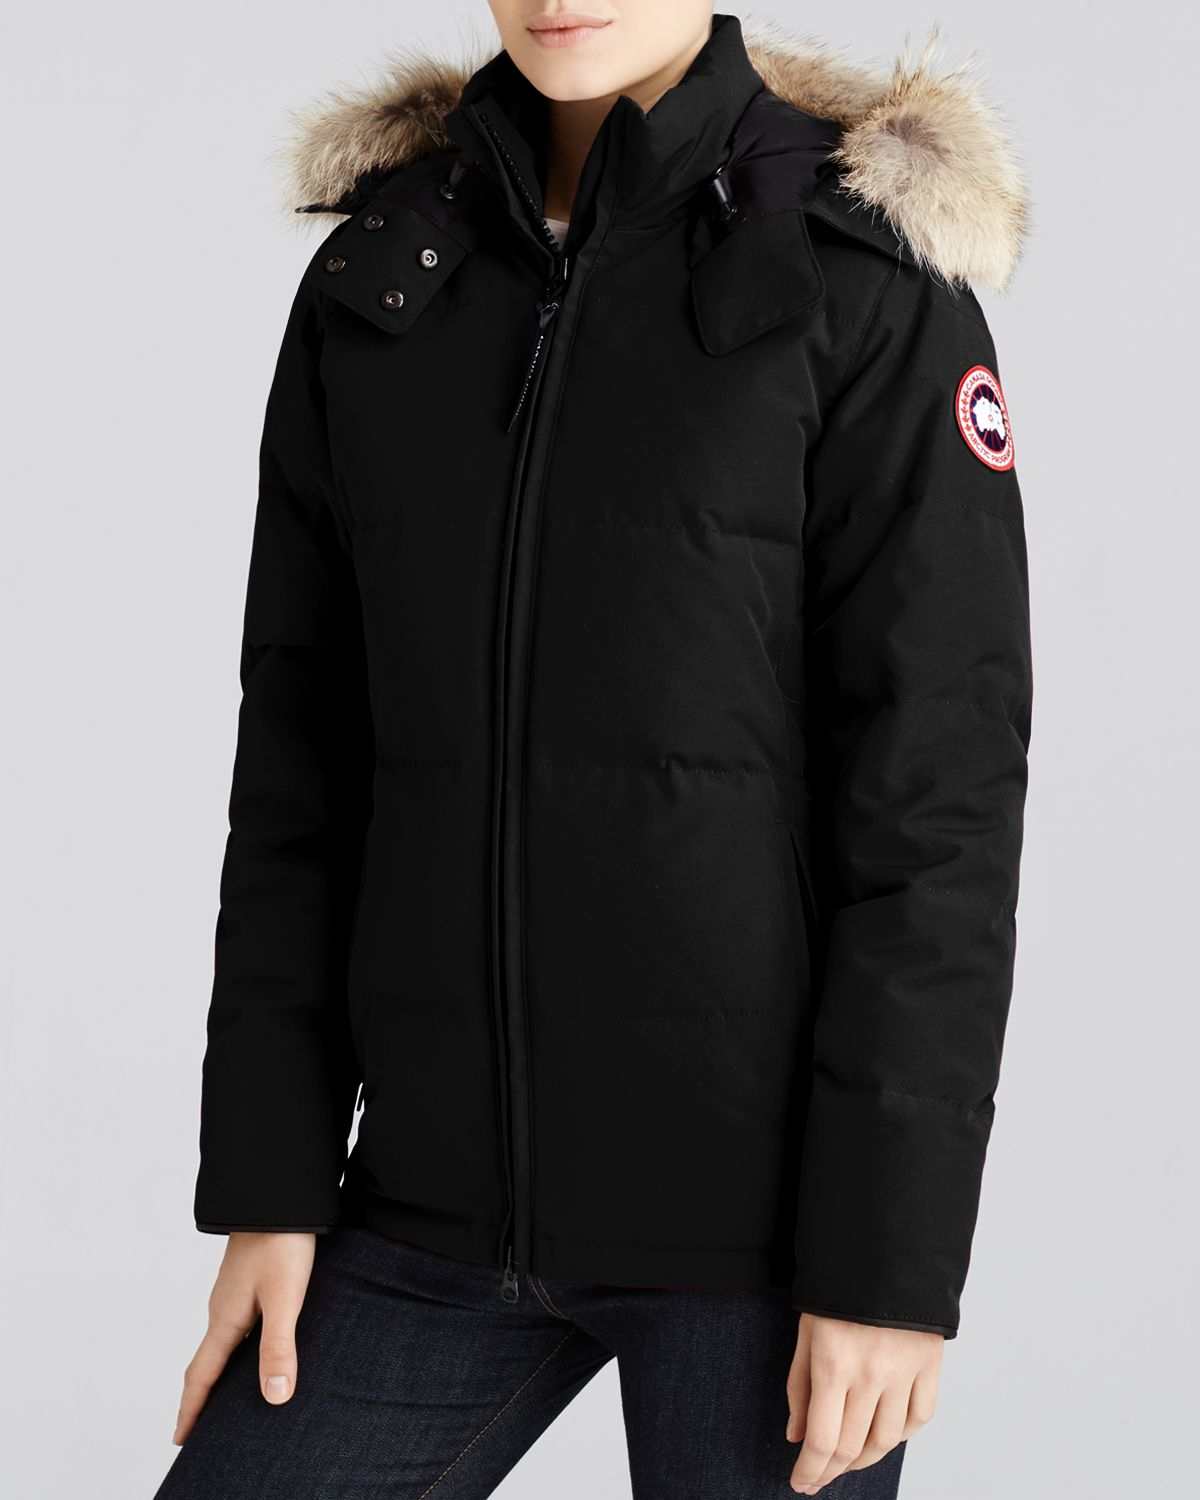 Canada Goose produces extreme weather outerwear since Discover high quality jackets, parkas and accessories designed for women, men and kids. Canada Goose.